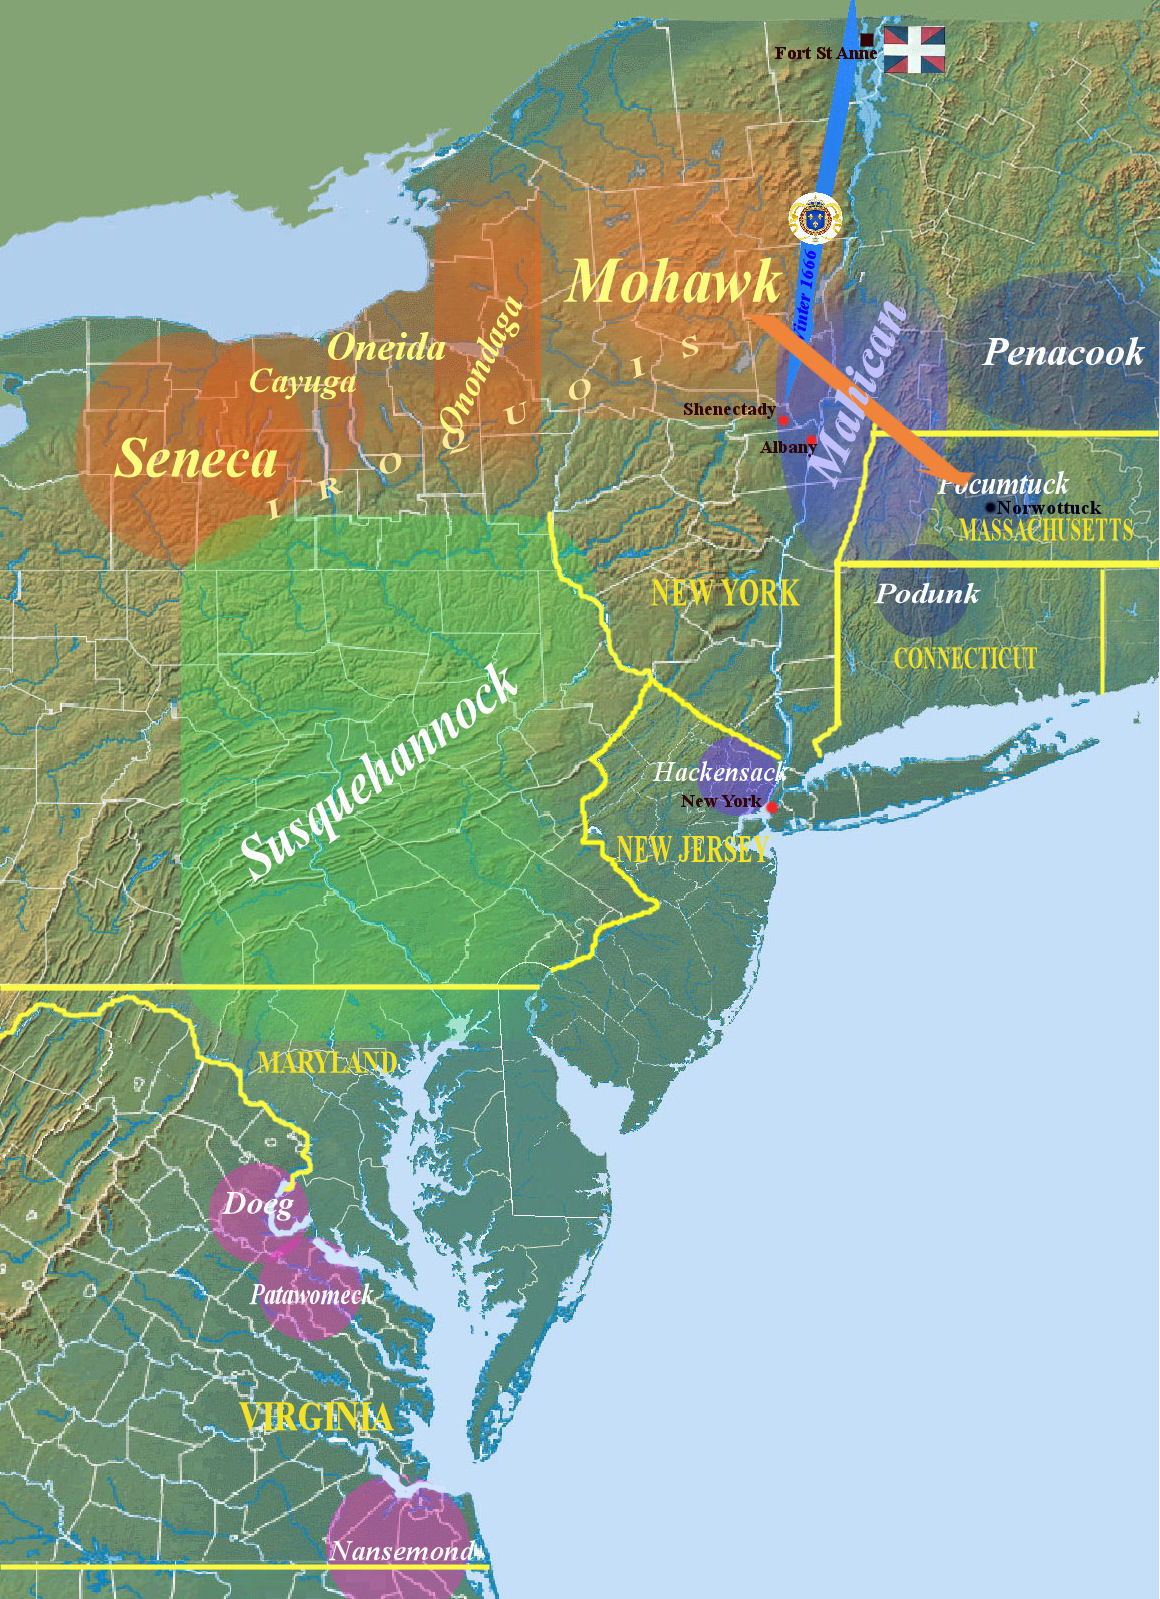 may 1666 impressed by the military campaign led during winter by the french mohawks choose to start negotiations governor nicholls promises to